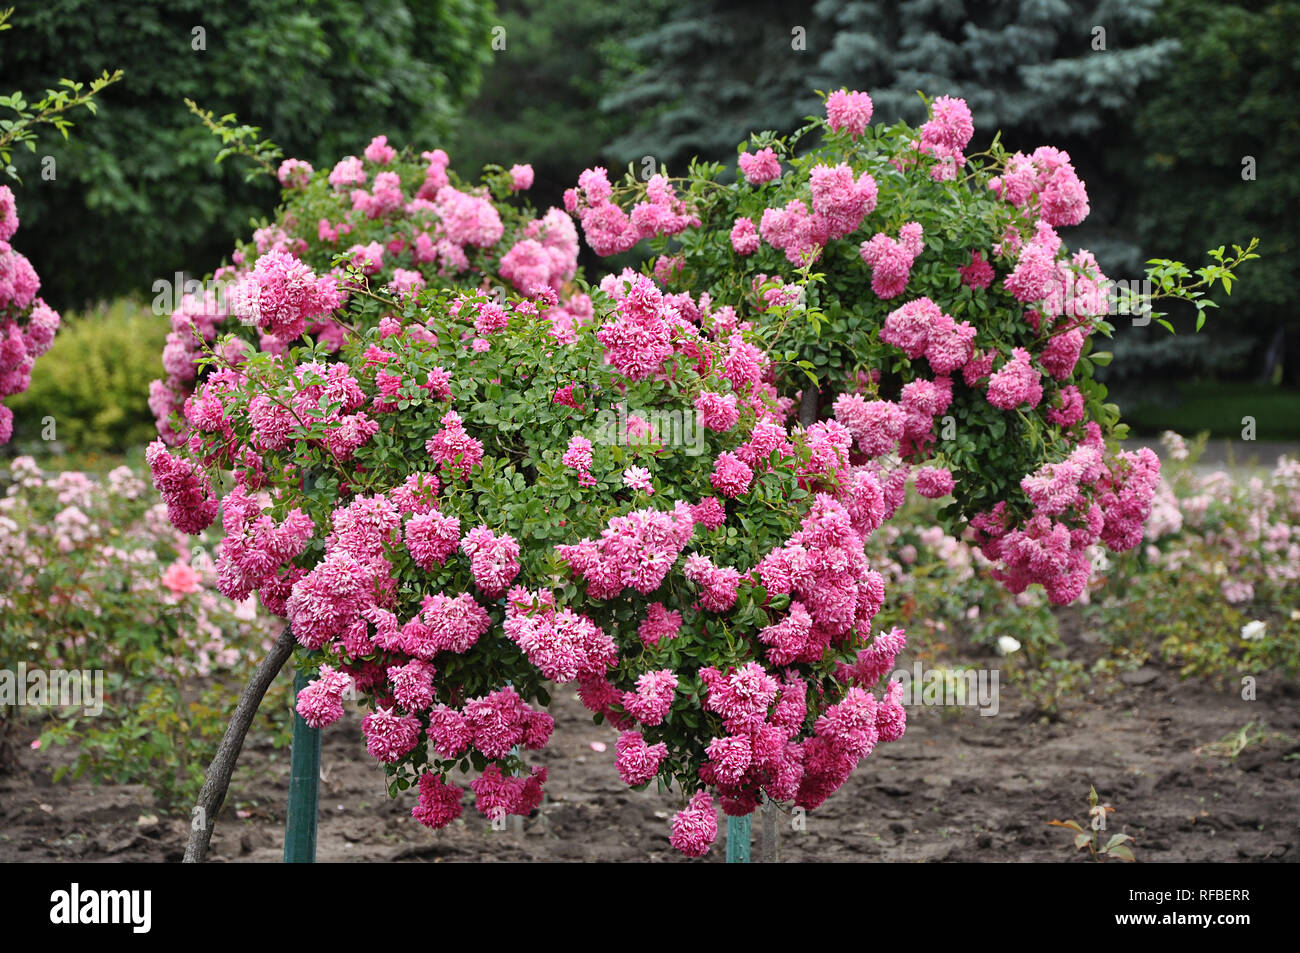 Beautiful fragrant blooming titled pink rose trees in the garden, selective focus - Stock Image